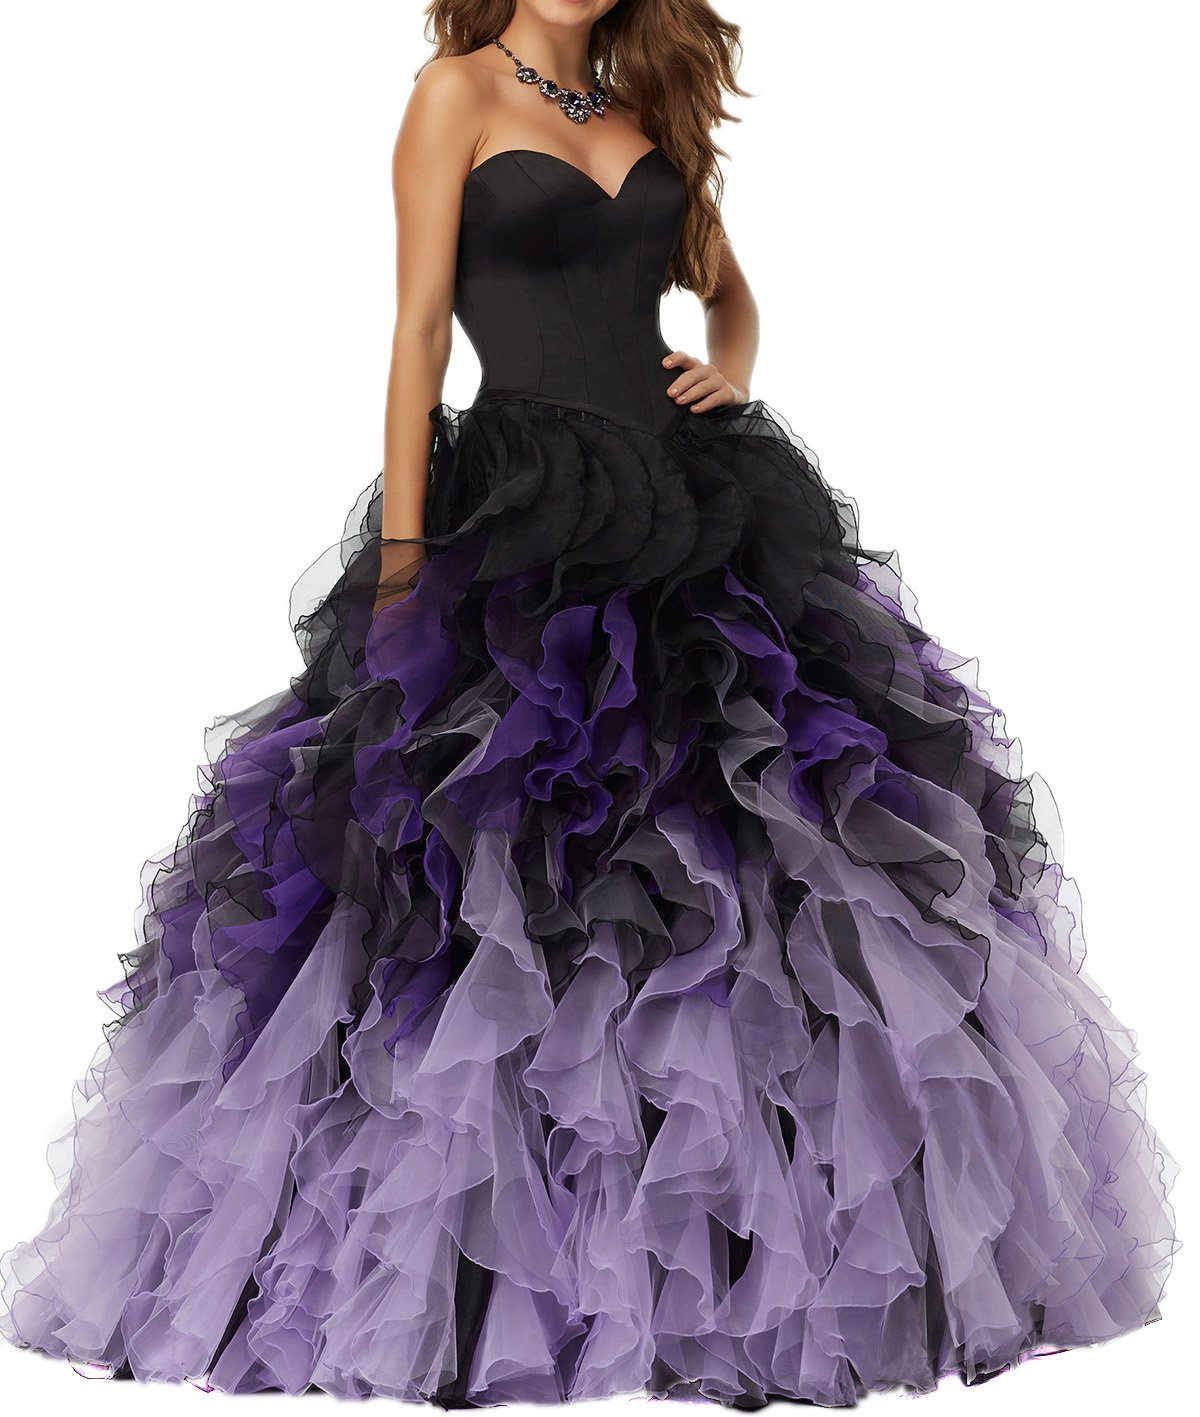 MEILIS 2016 Sweethart Ball Gown Puffy Ombre Organza Prom Dresses Long Quinceanera Black Lilac